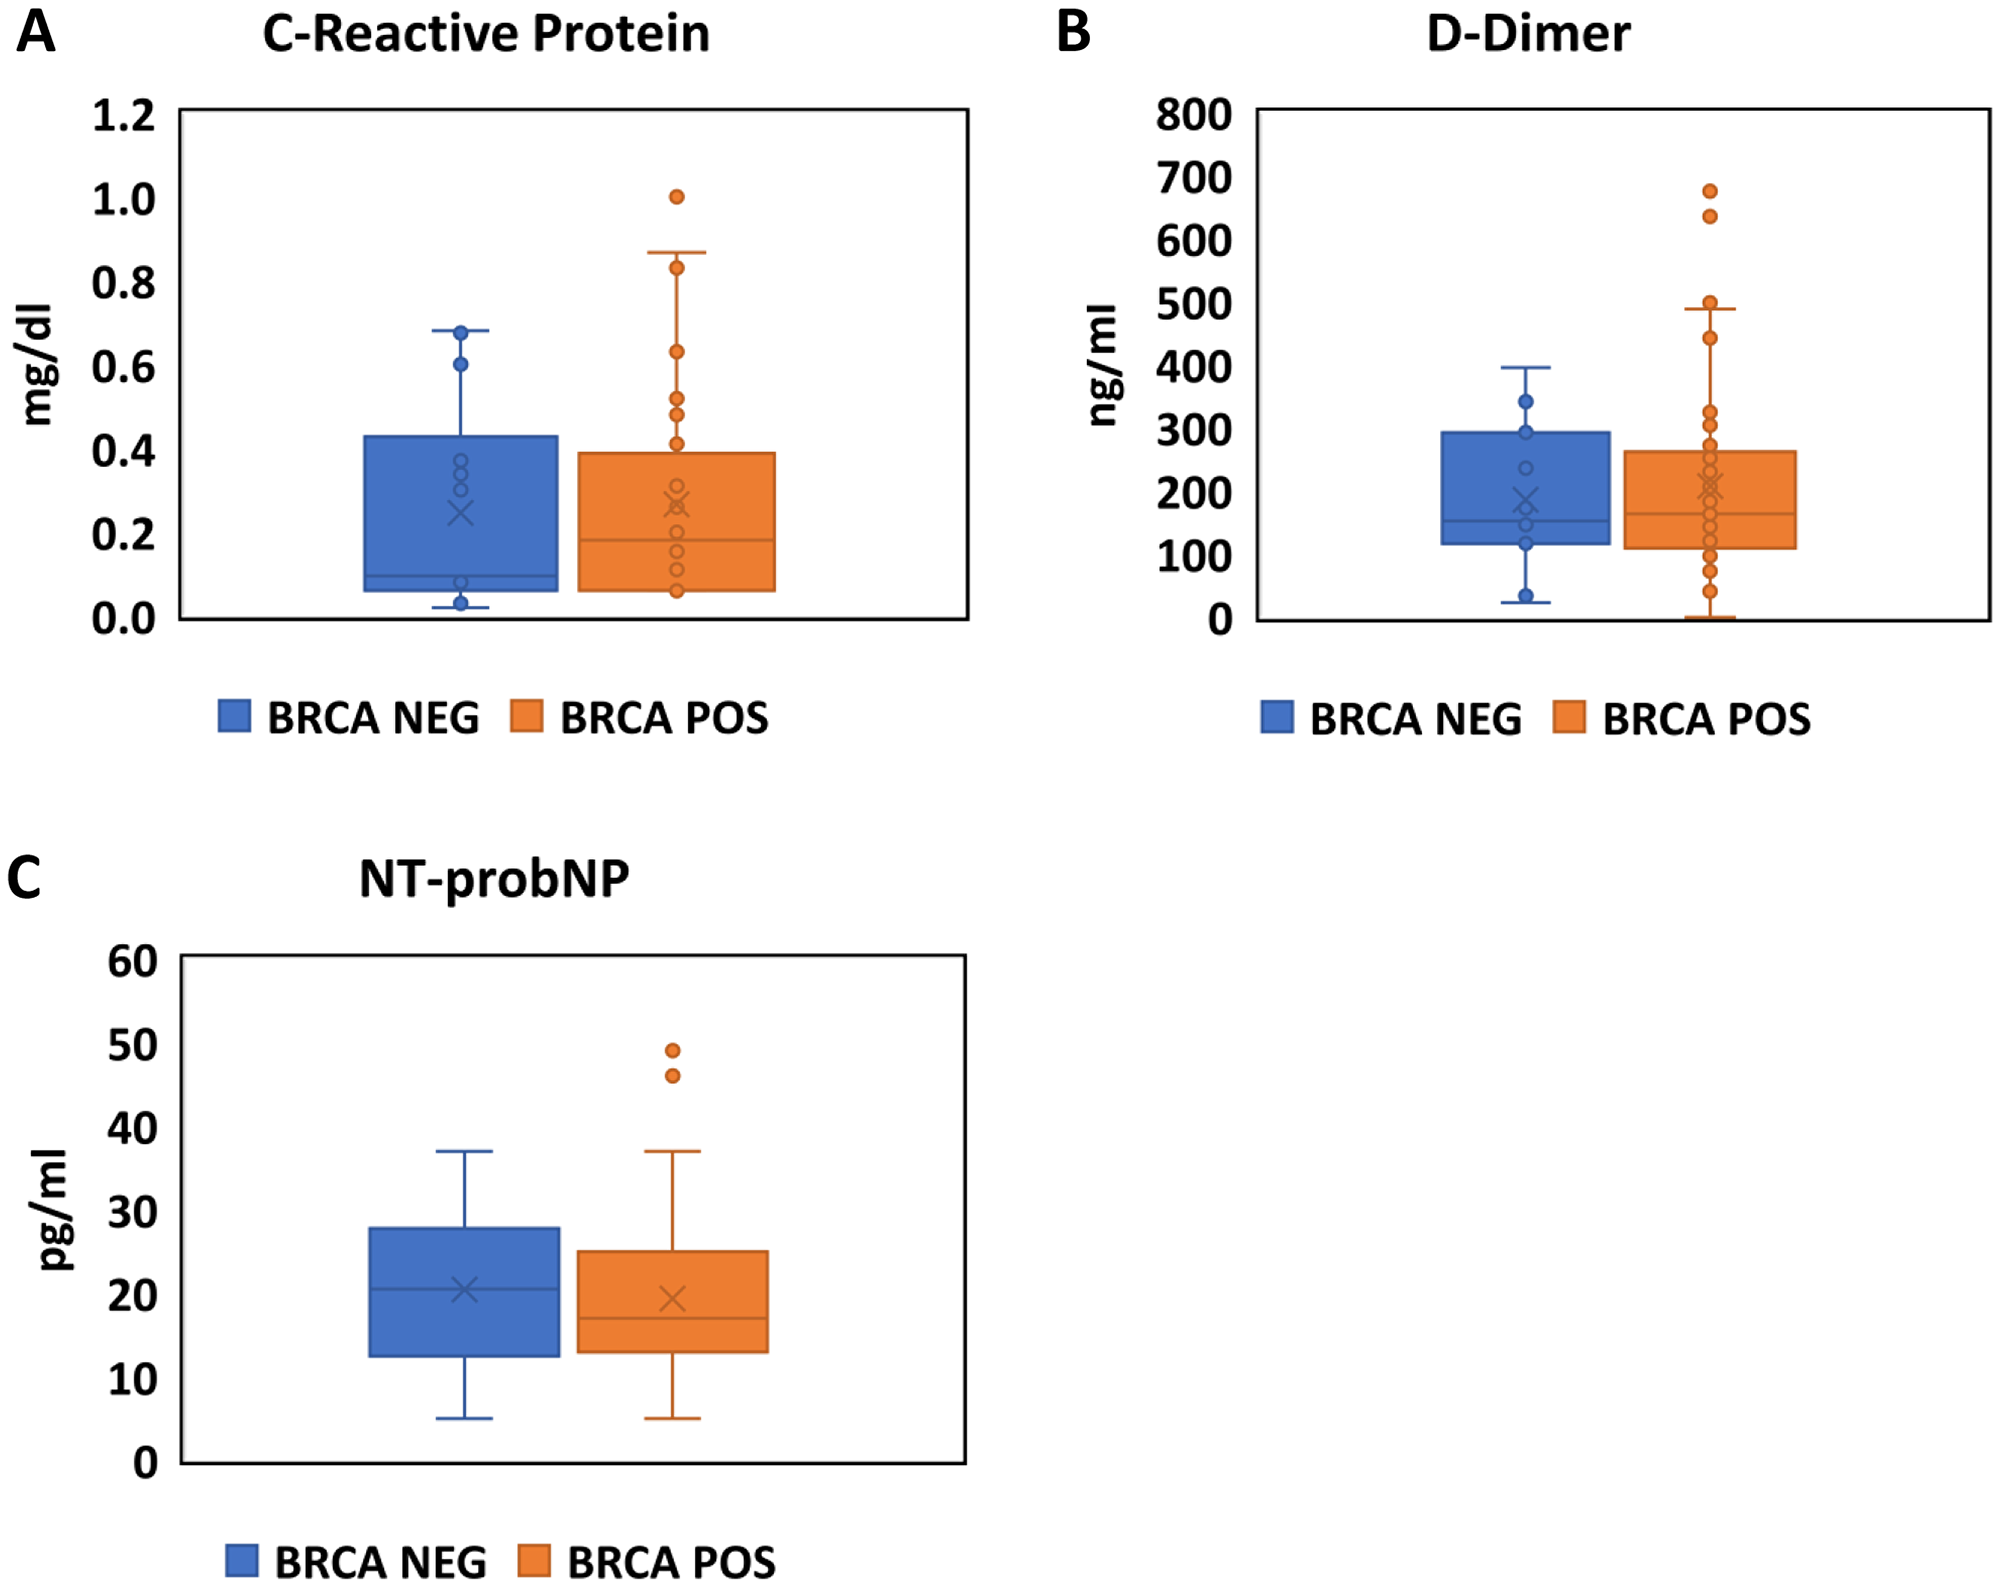 Assessment of inflammation, coagulation and natriuretic peptides in BRCA positive carriers and negative carriers.